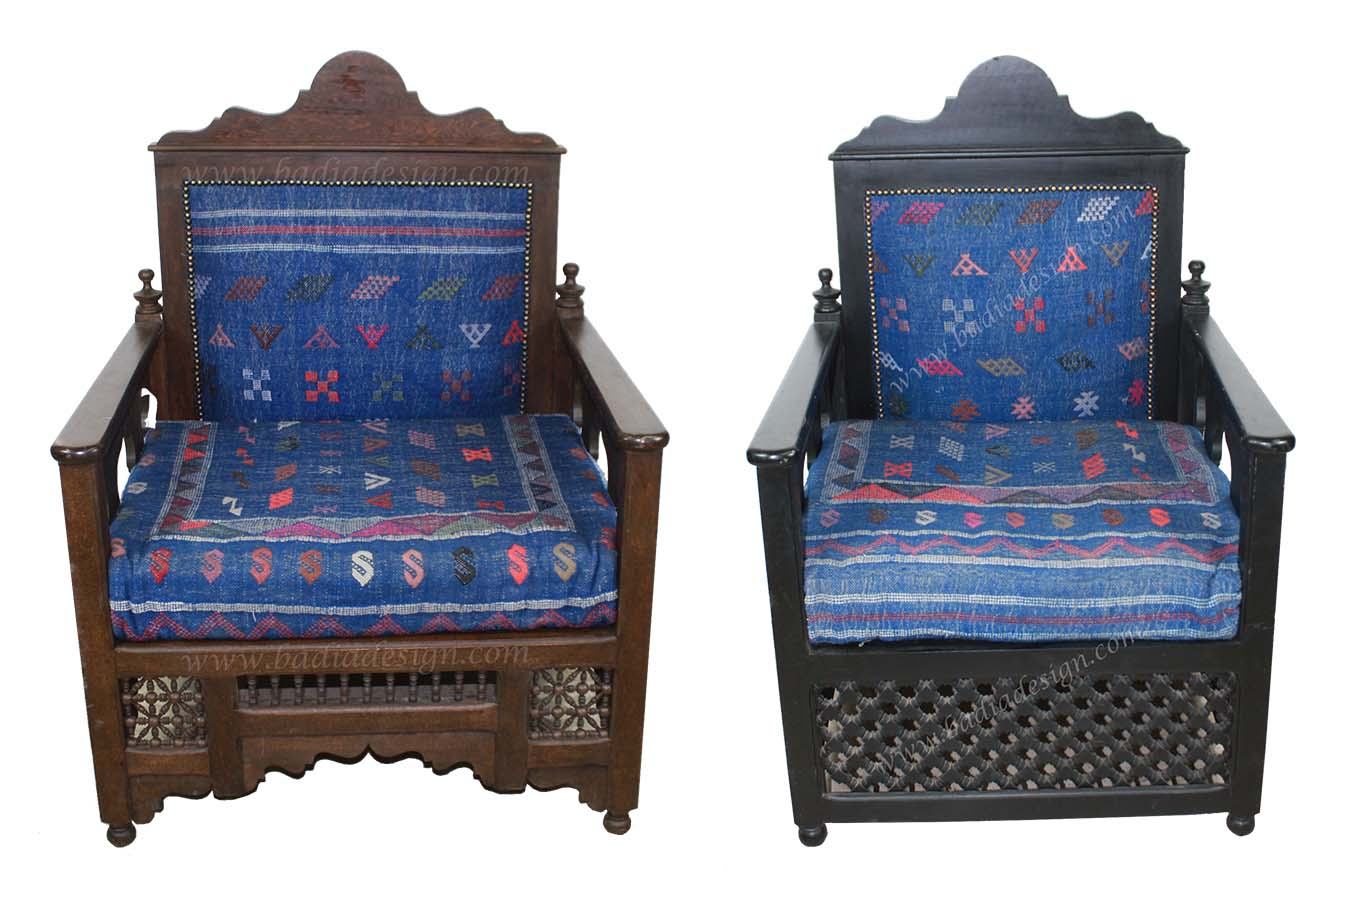 moroccan-wooden-chair-with-kilim-cushion-cw-ch016.jpg